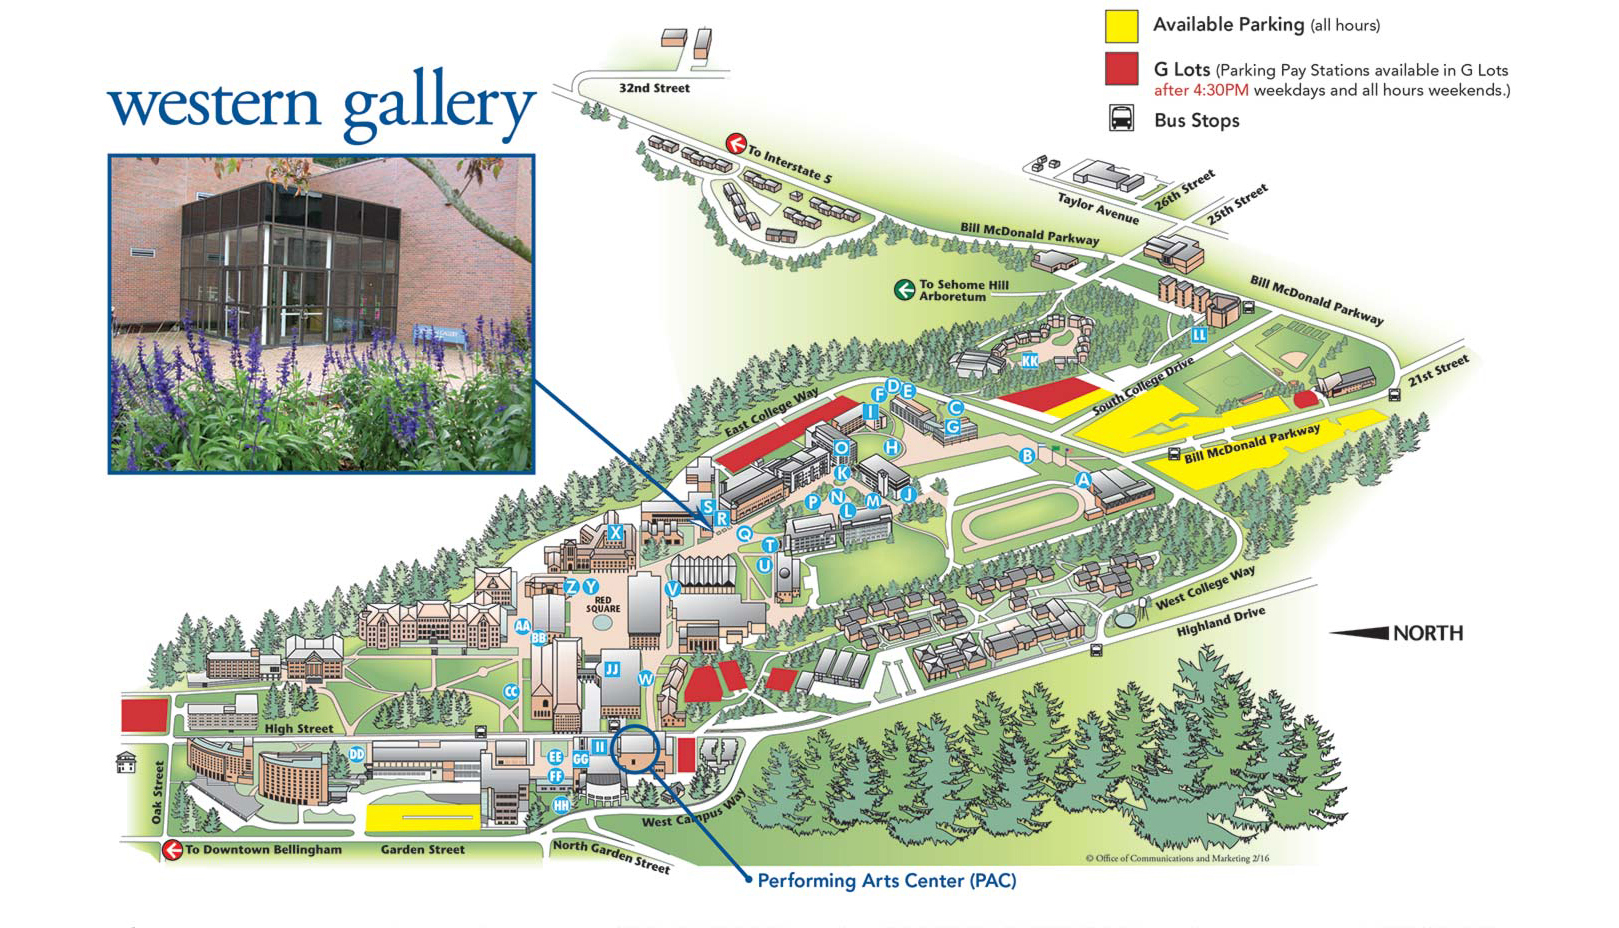 WesternGallery_Map_updated_nokey.jpg